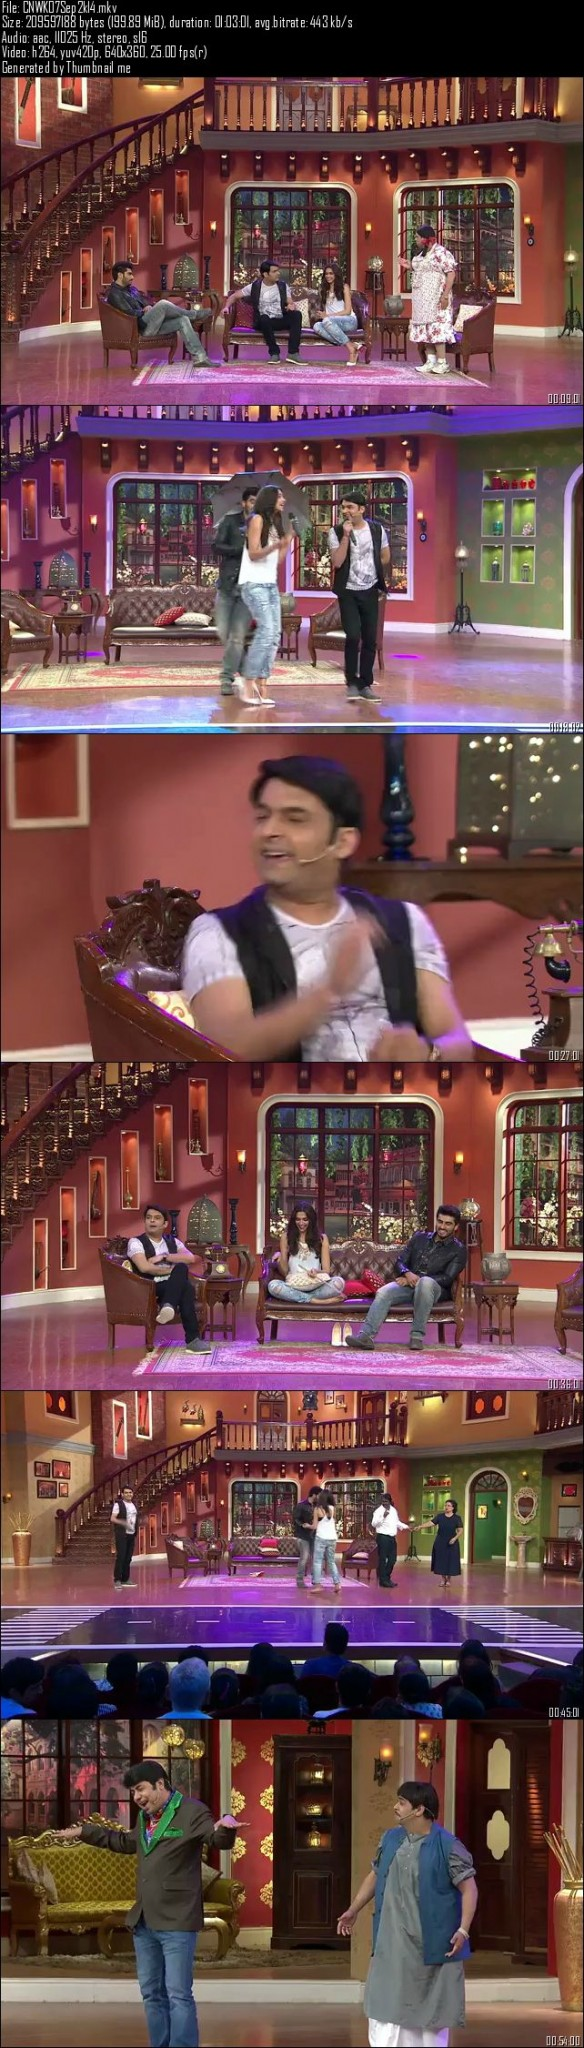 Comedy Nights With Kapil 7th September (2014)